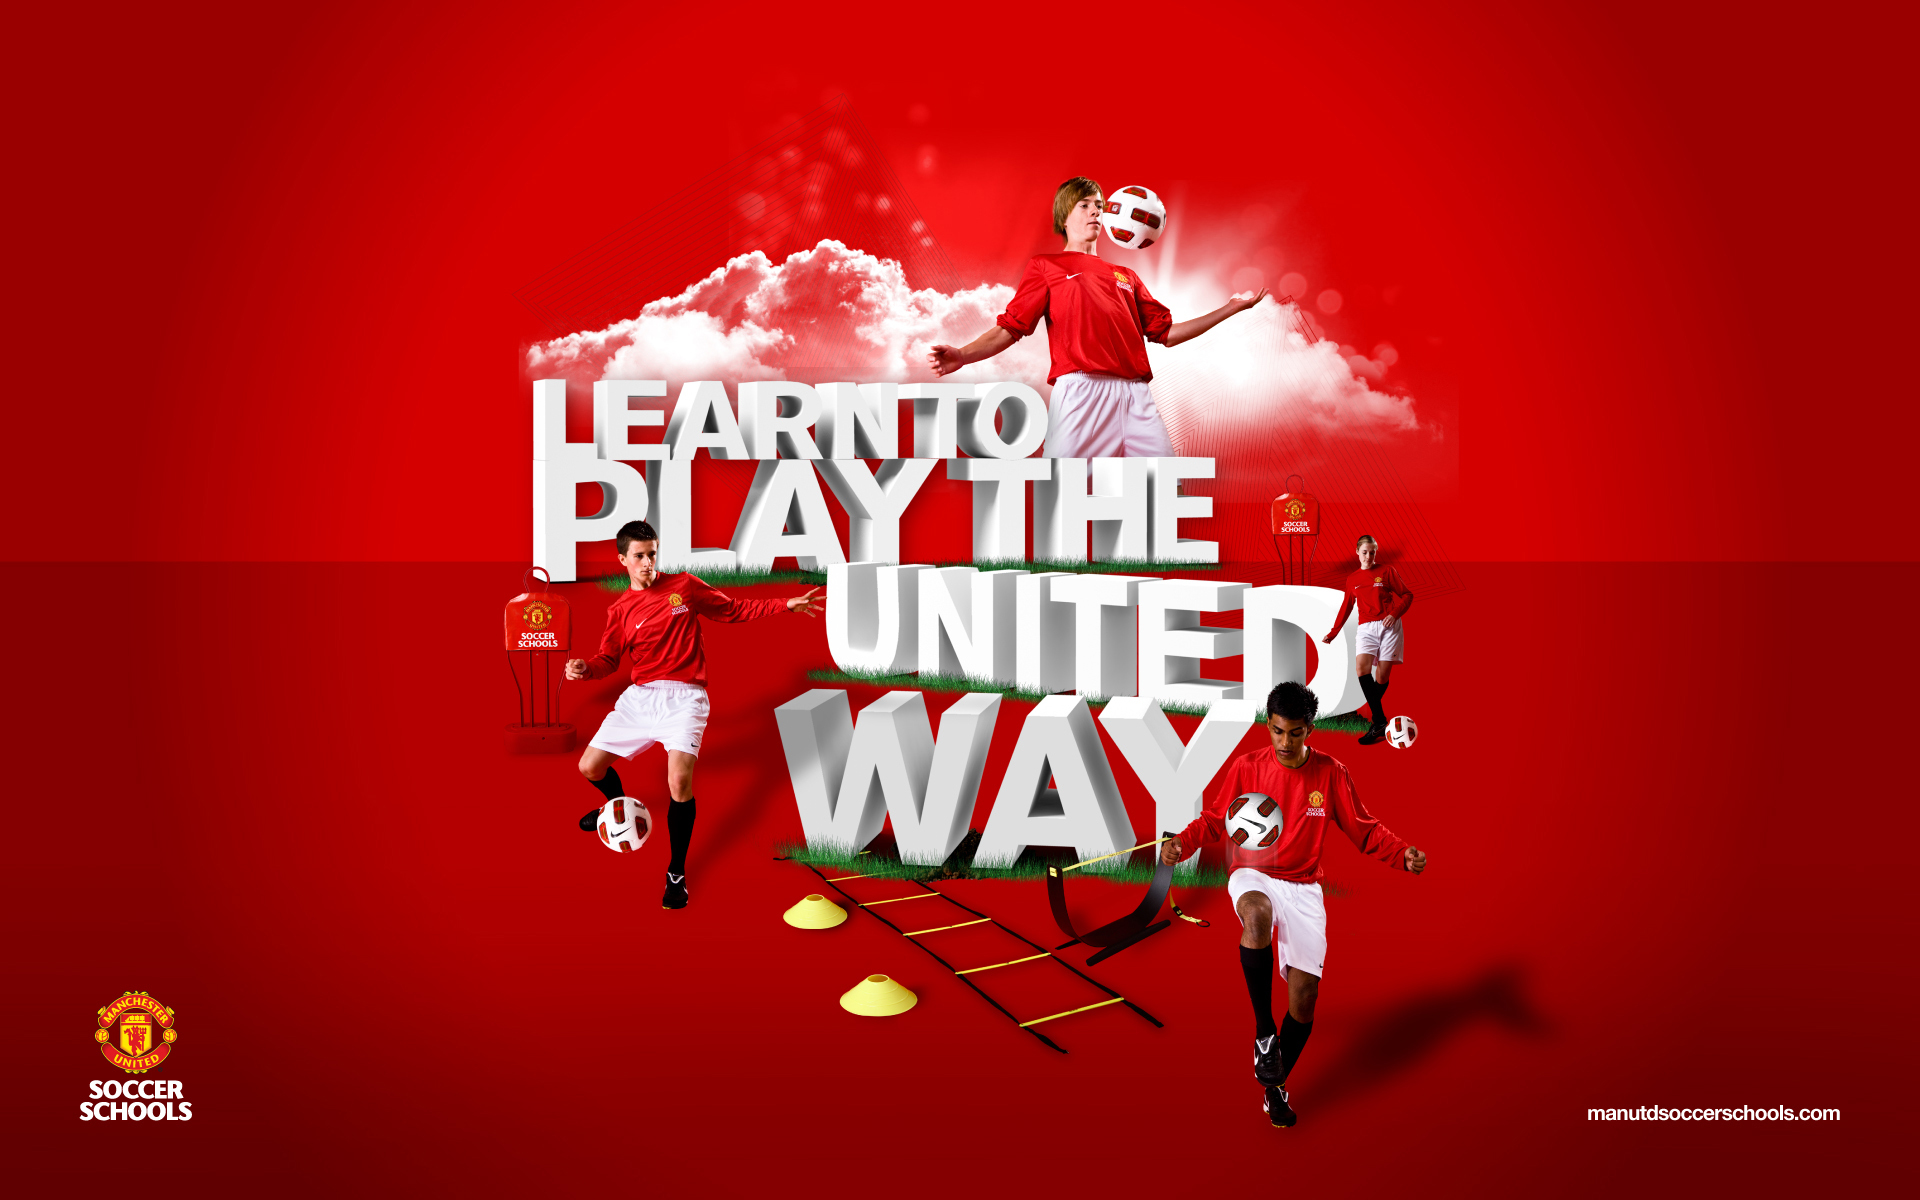 Free Download 1920x1200px Man Utd Wallpaper 2014 1920x1200 For Your Desktop Mobile Tablet Explore 22 Man United Wallpaper 2017 Man United Wallpaper 2017 Man United Wallpaper Man United Wallpapers